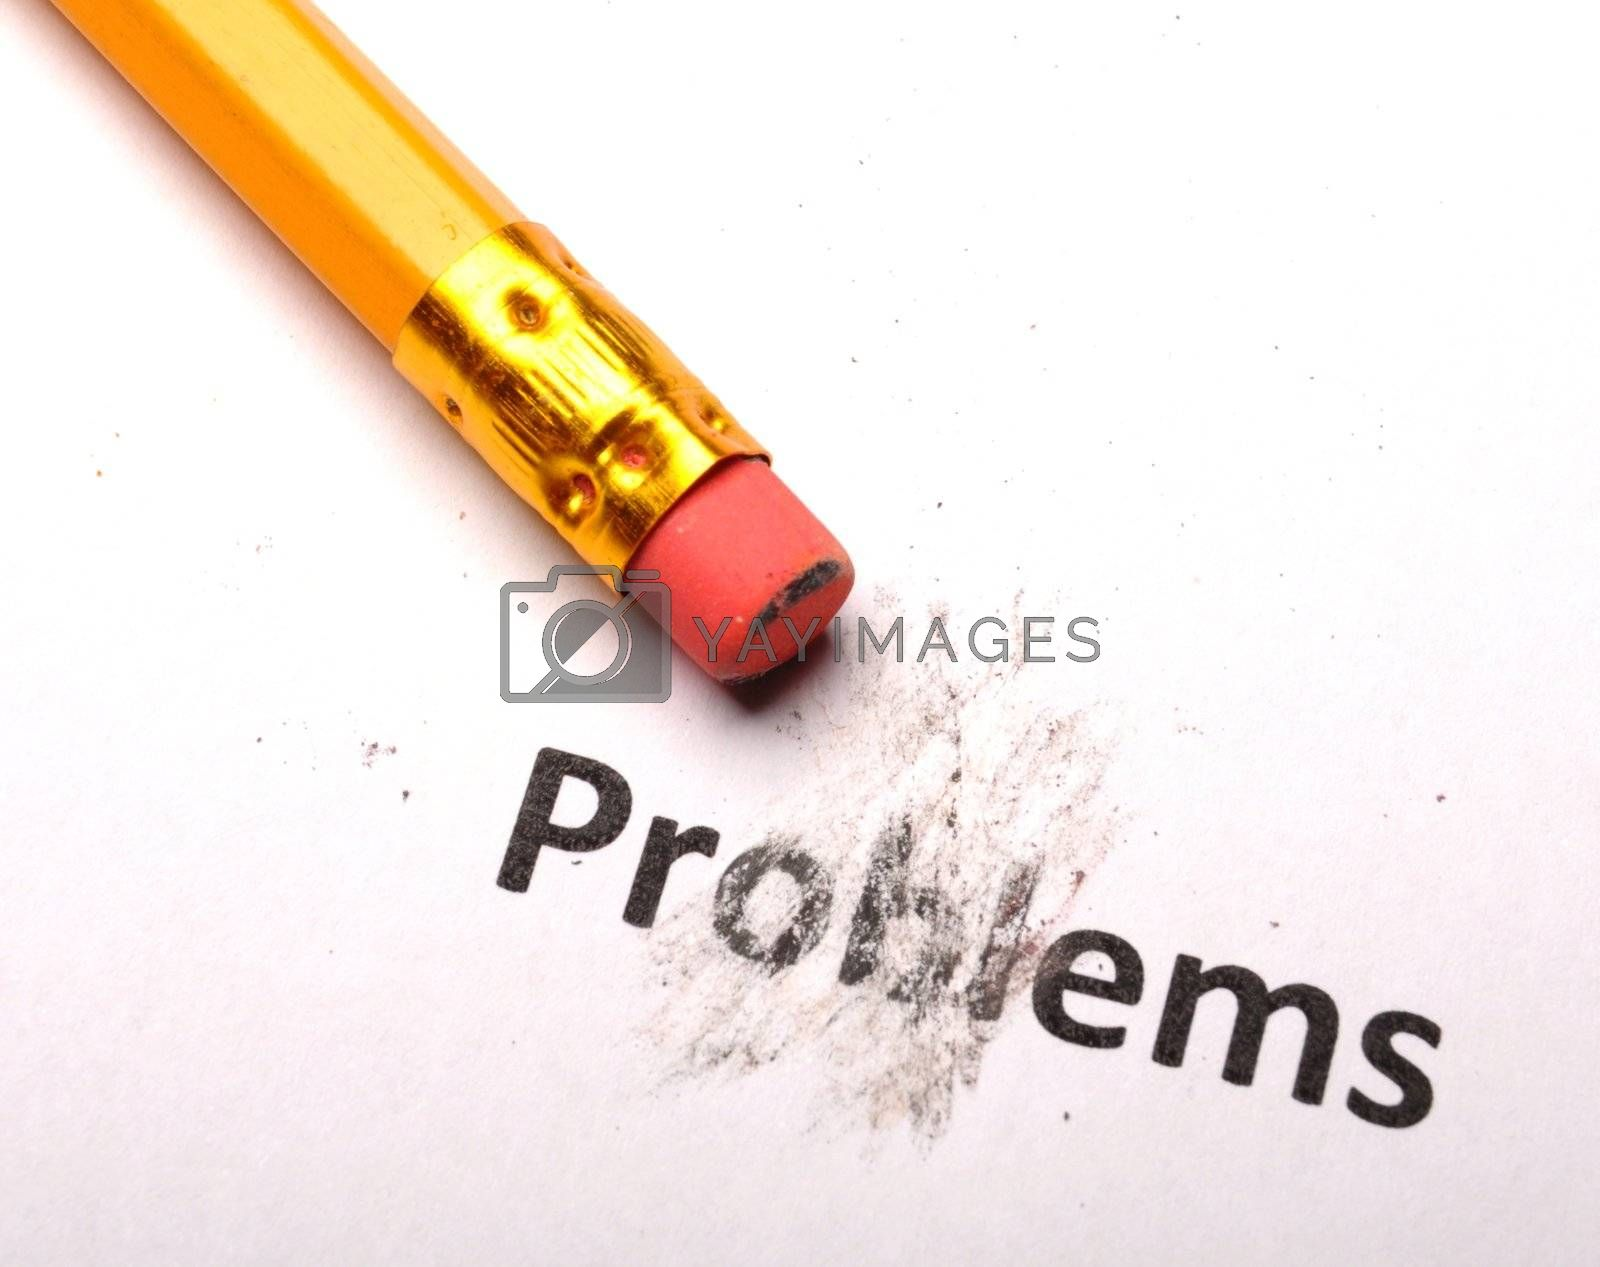 problems or solutions concept with pencil and eraser on white paper